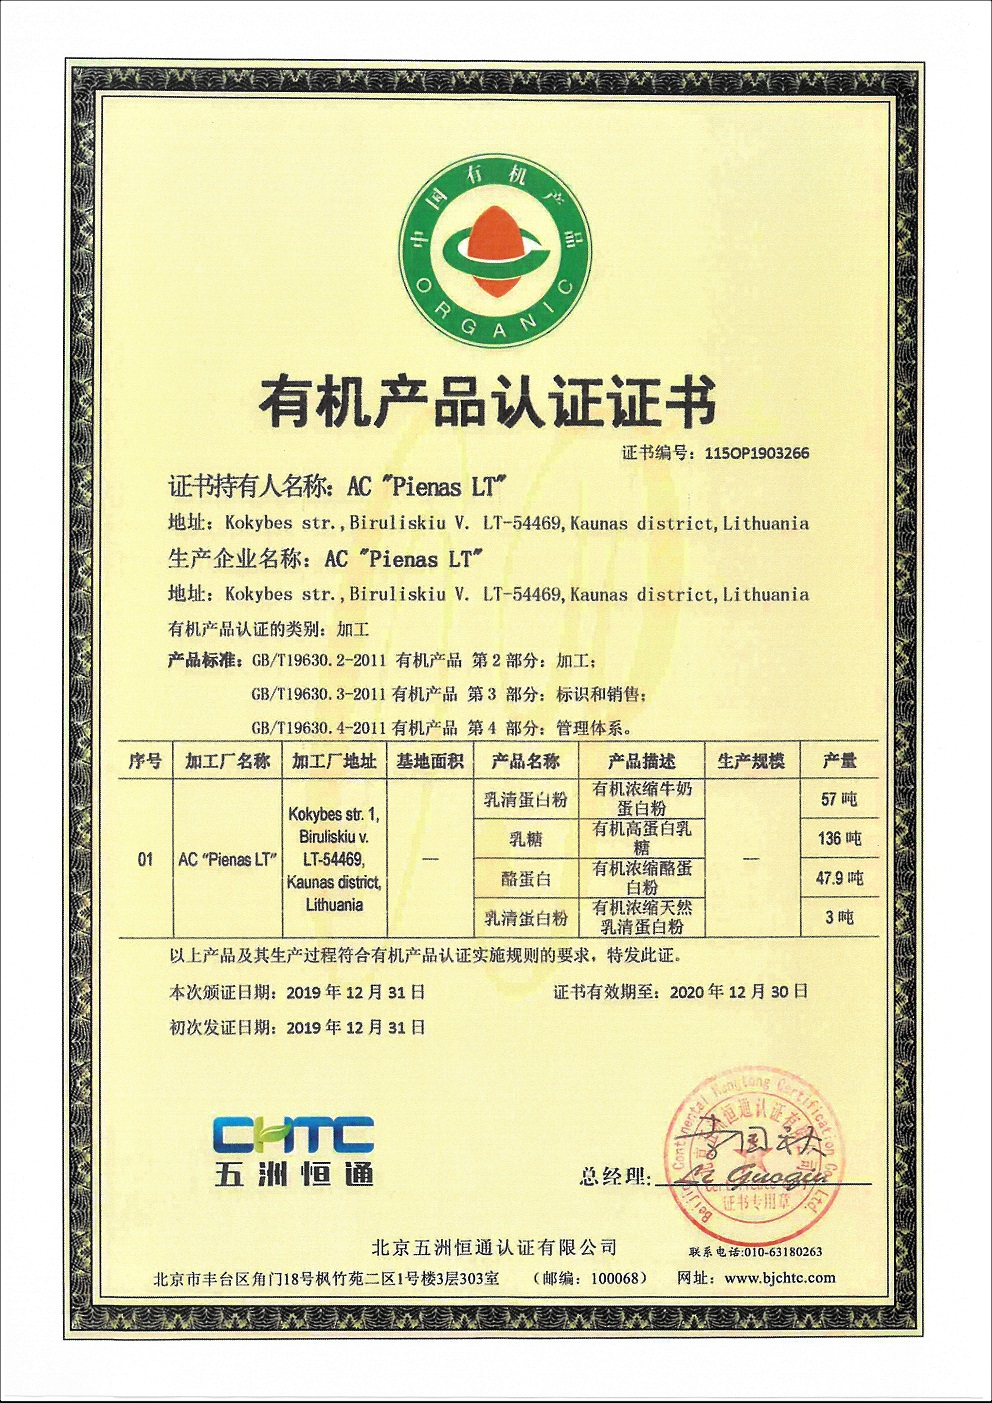 People's Republic of China certification for the BaltMilk organic products